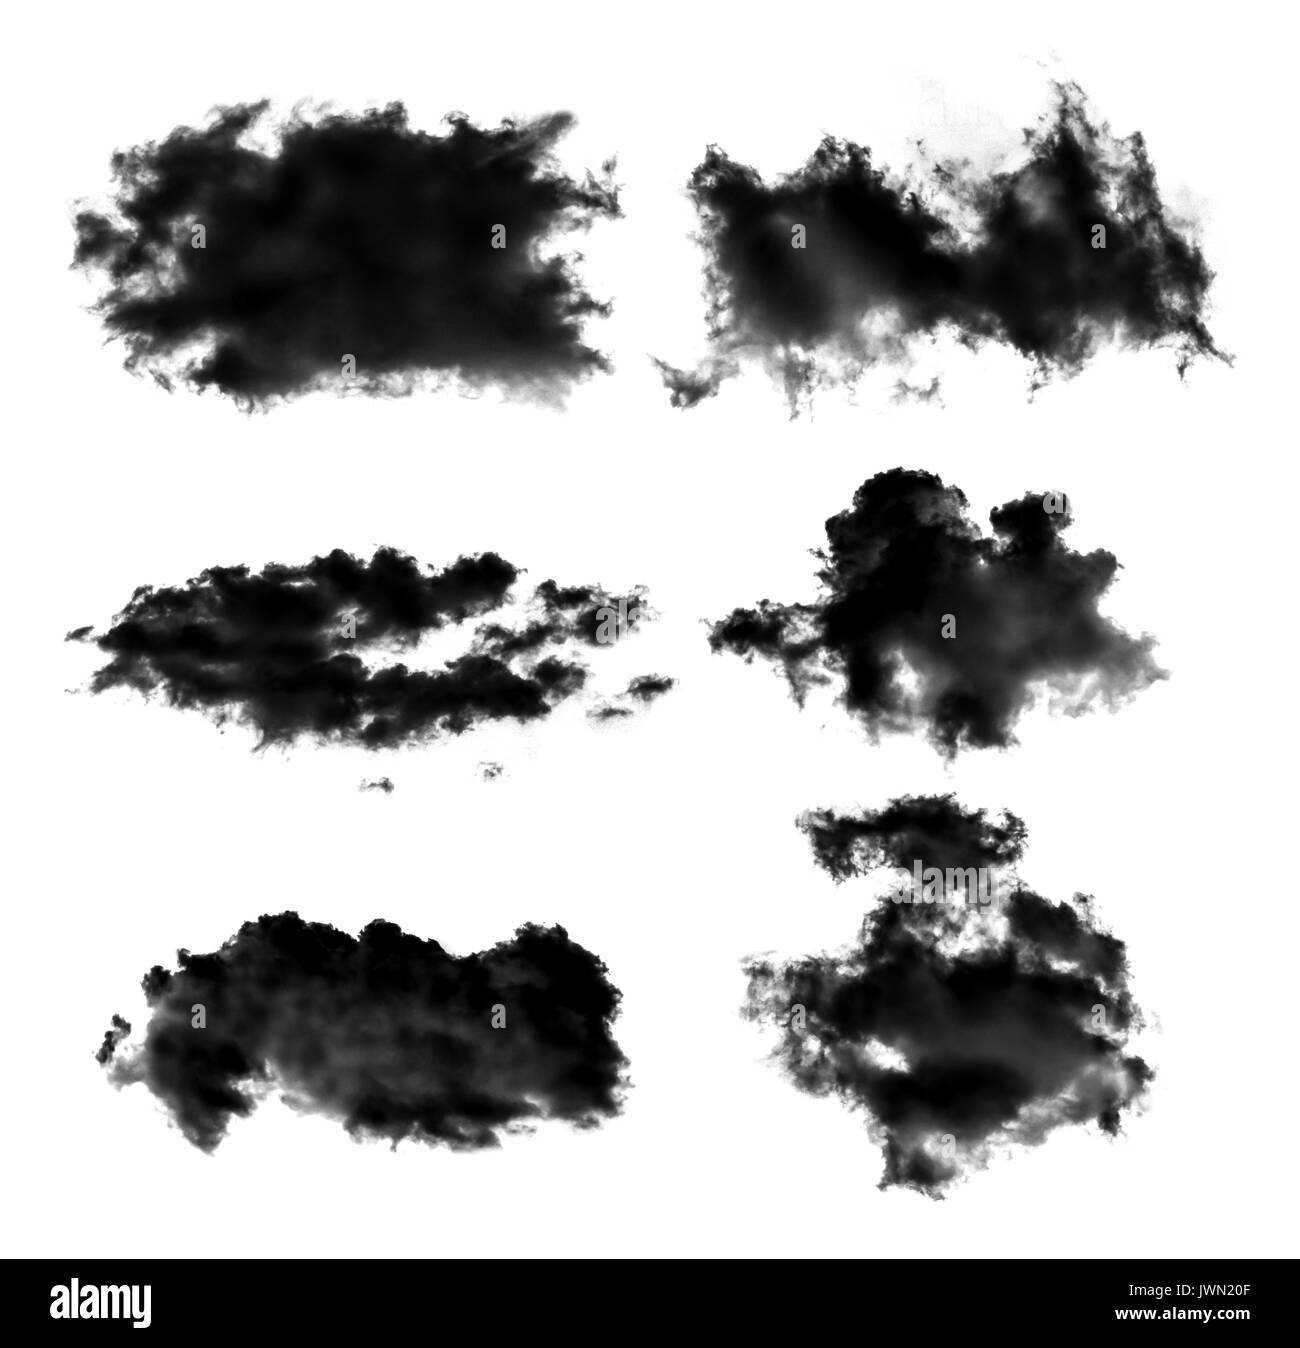 set of black clouds or smoke isolated on white background - Stock Image